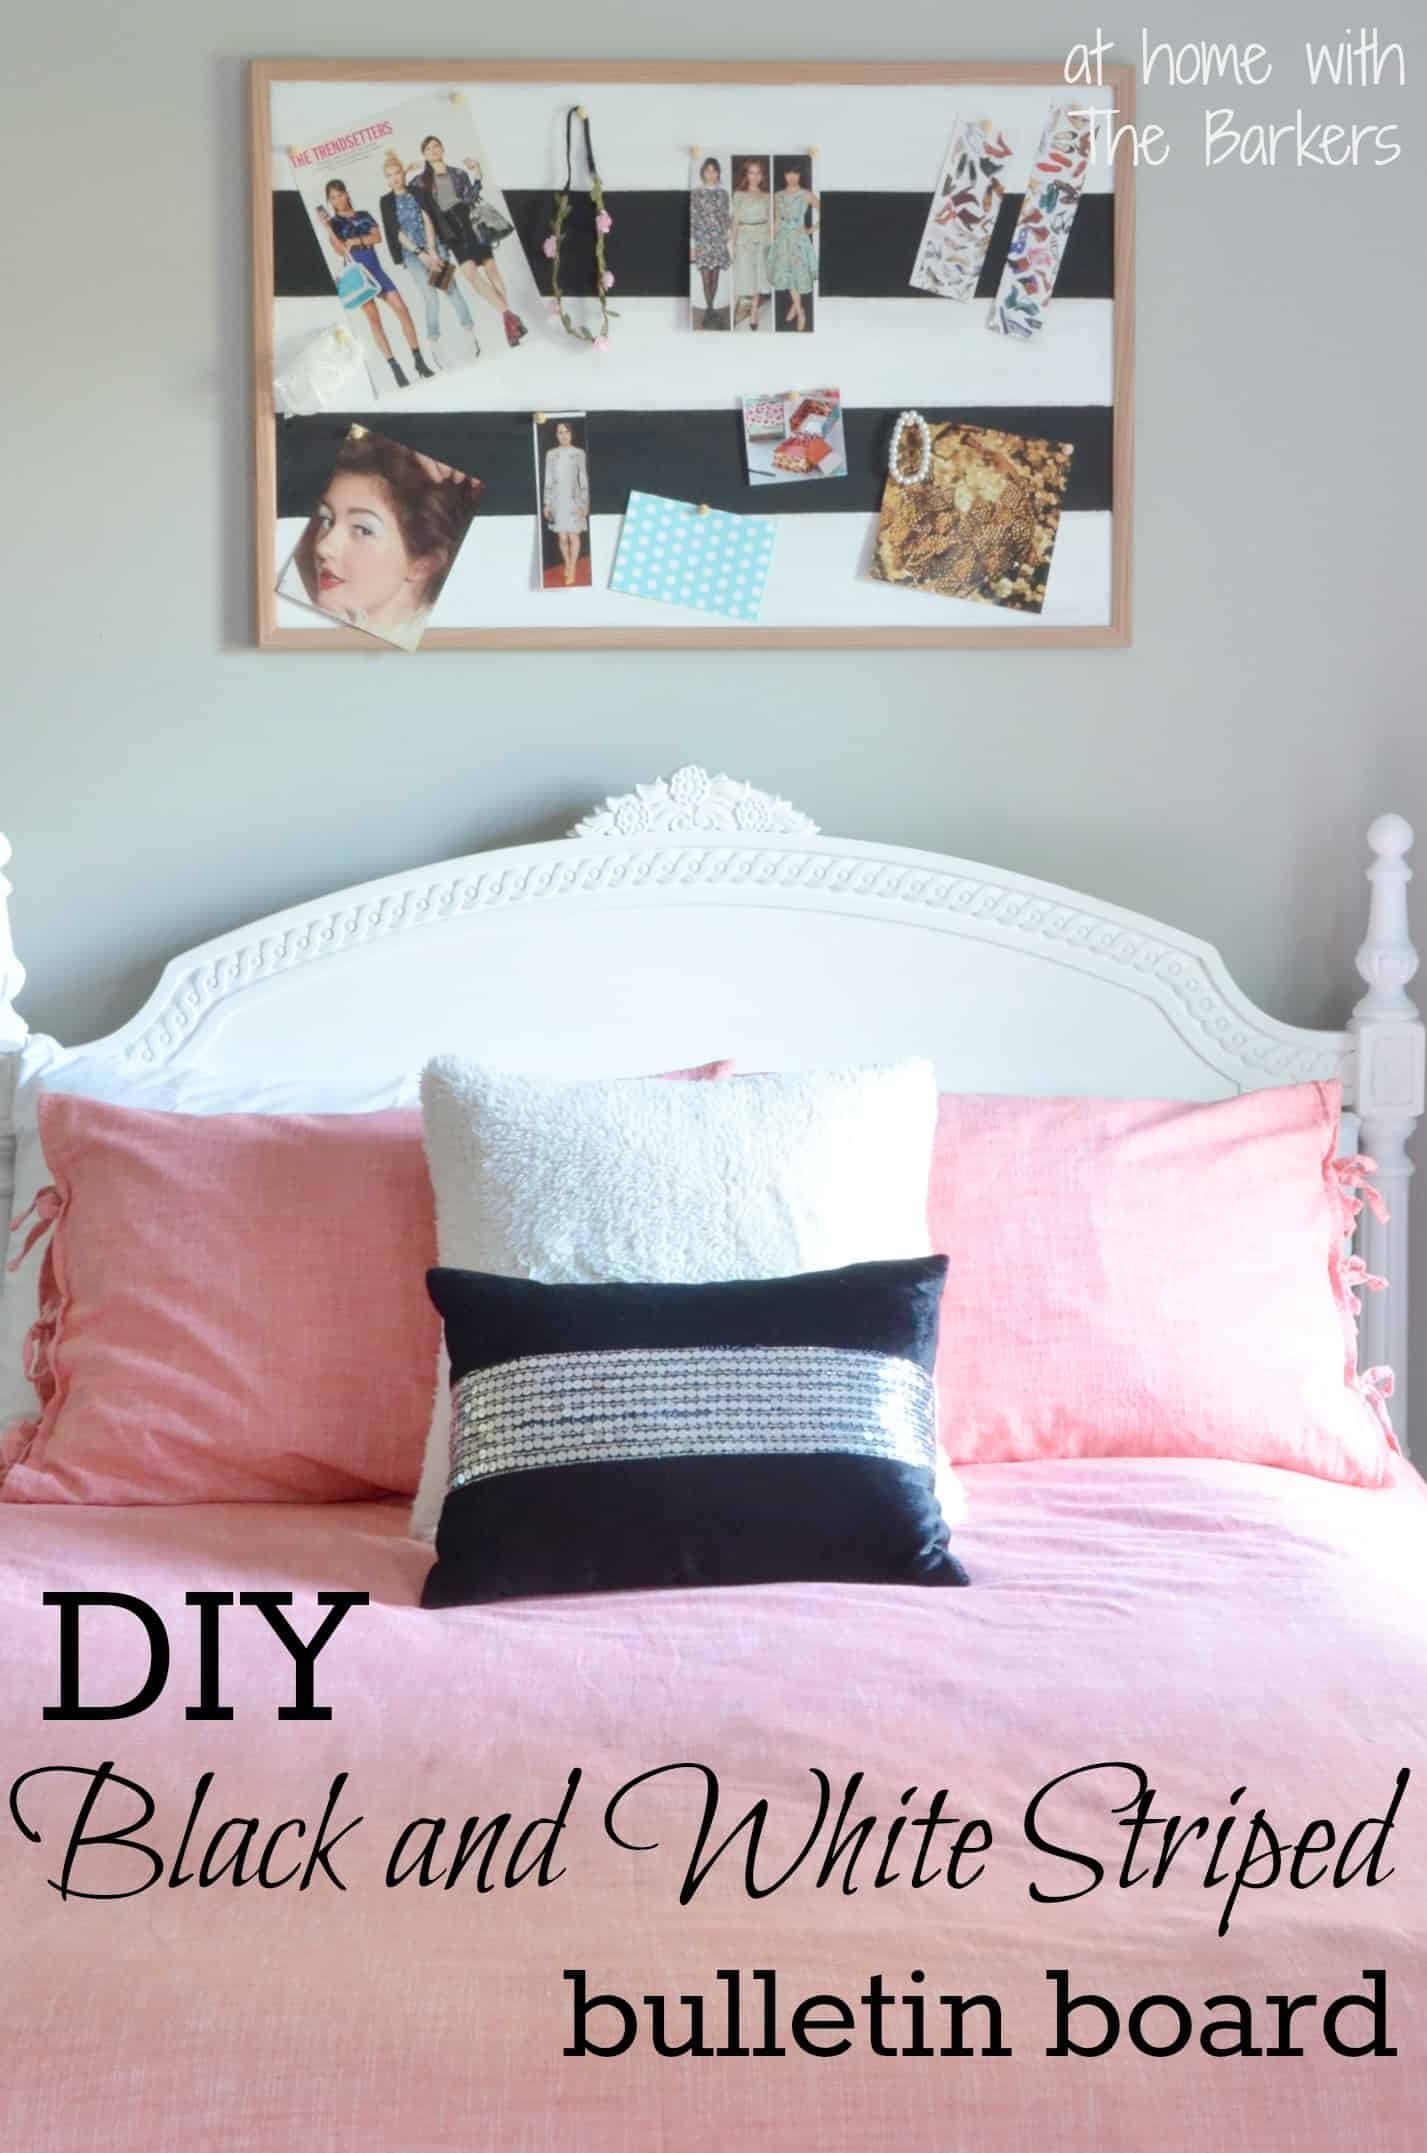 Black And White Striped Bulletin Board At Home With The